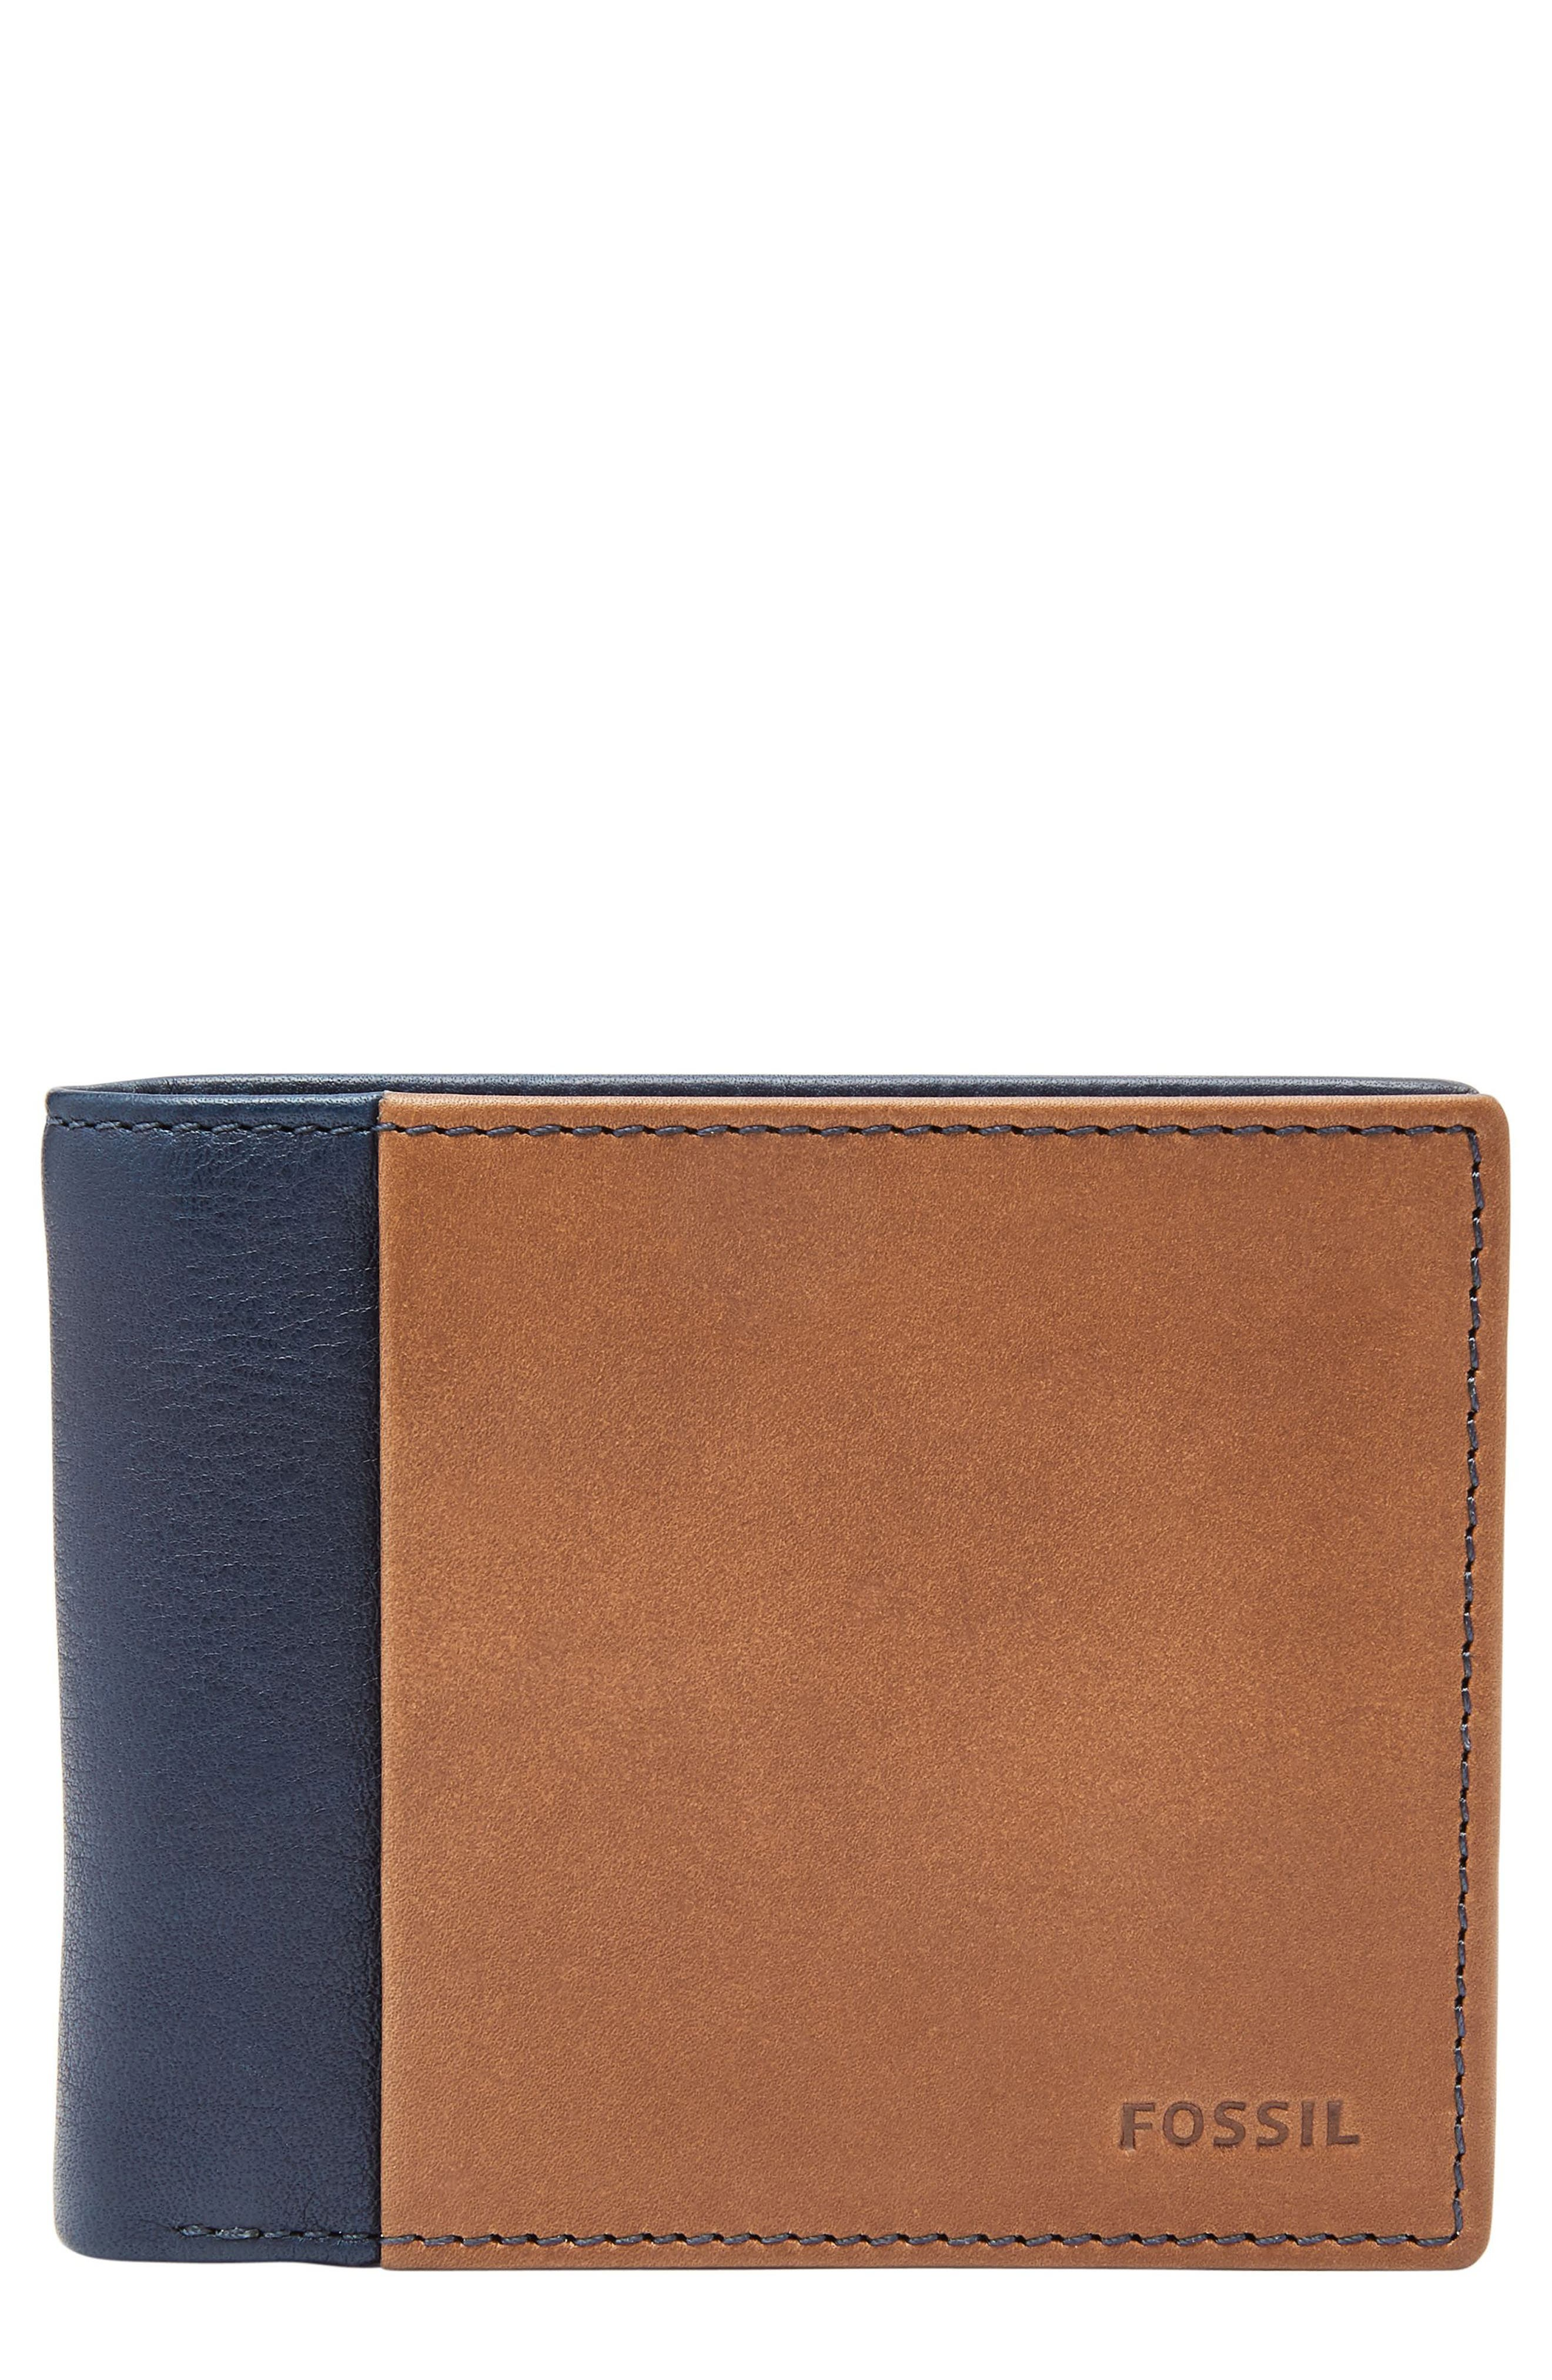 Ward Leather Wallet,                         Main,                         color, Navy